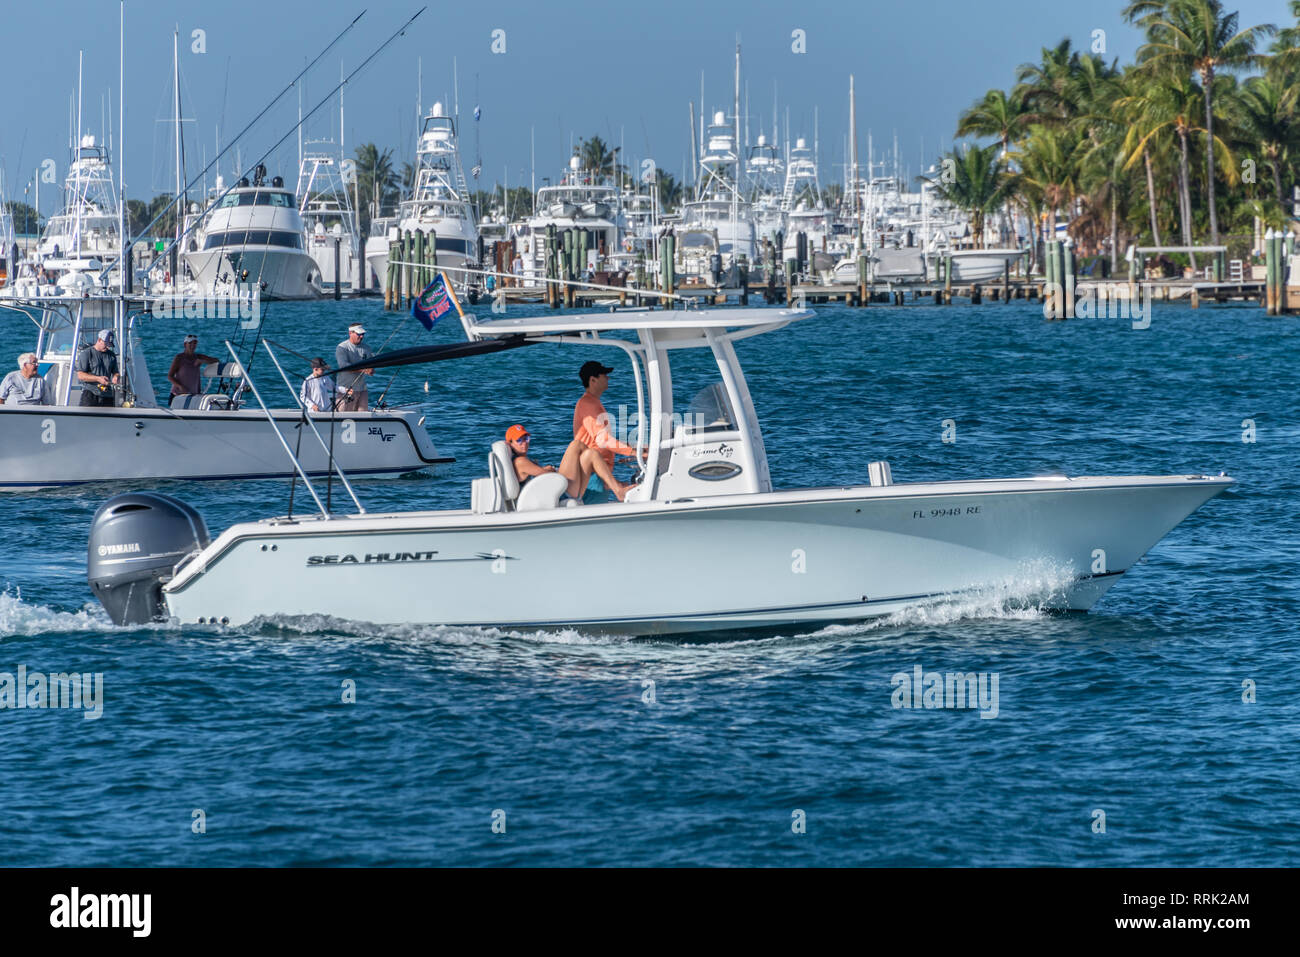 Boating in the Palm Beach Inlet (also known as the Lake Worth Inlet) off of Peanut Island in Palm Beach, Florida. (USA) - Stock Image